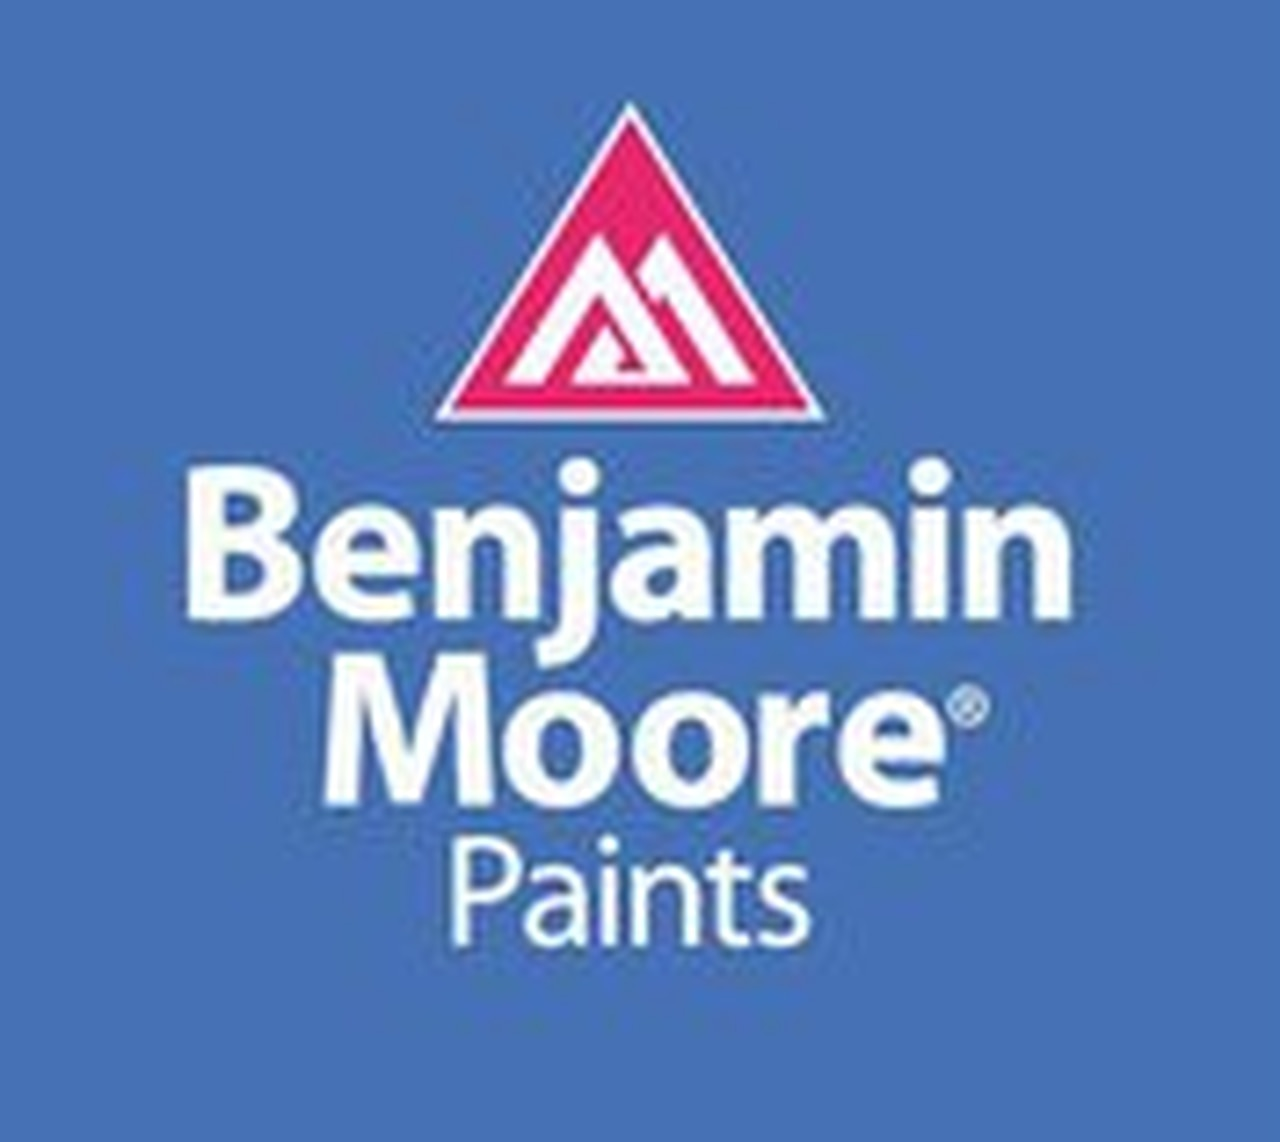 benjamin moore 5 off printable coupon expires oct 15 on benjamin moore coupon id=42476